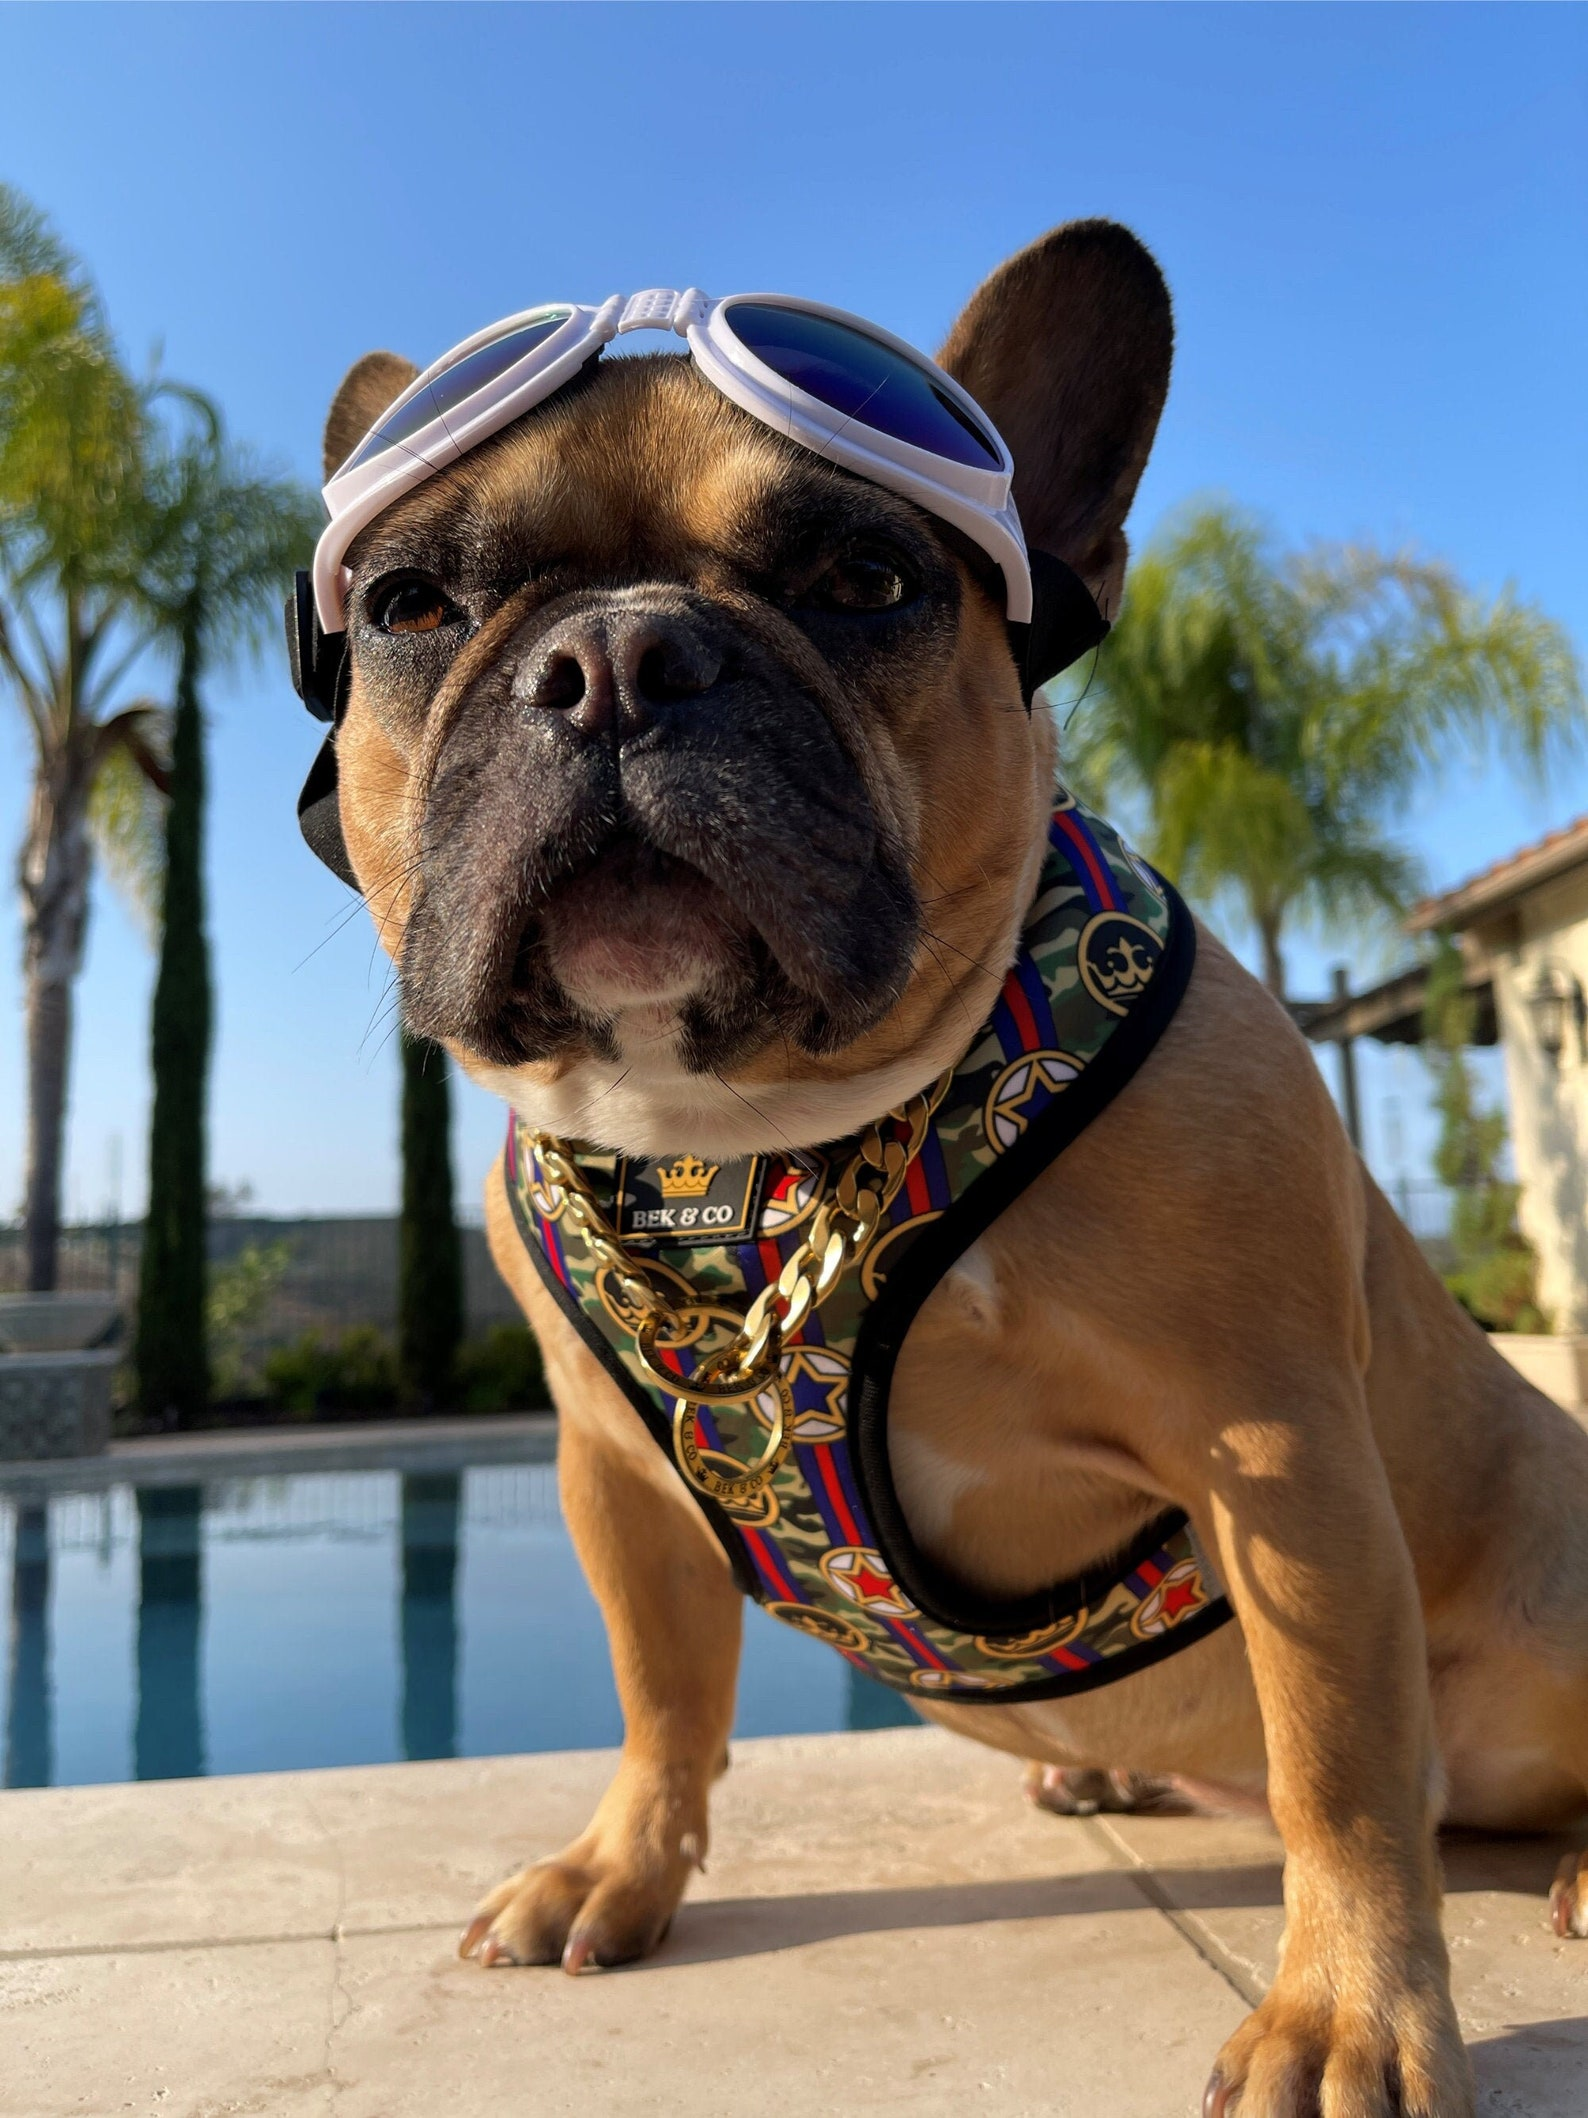 Stylish French Bulldog wearing Bek & Co harness and accessories. Image via Bek & Co